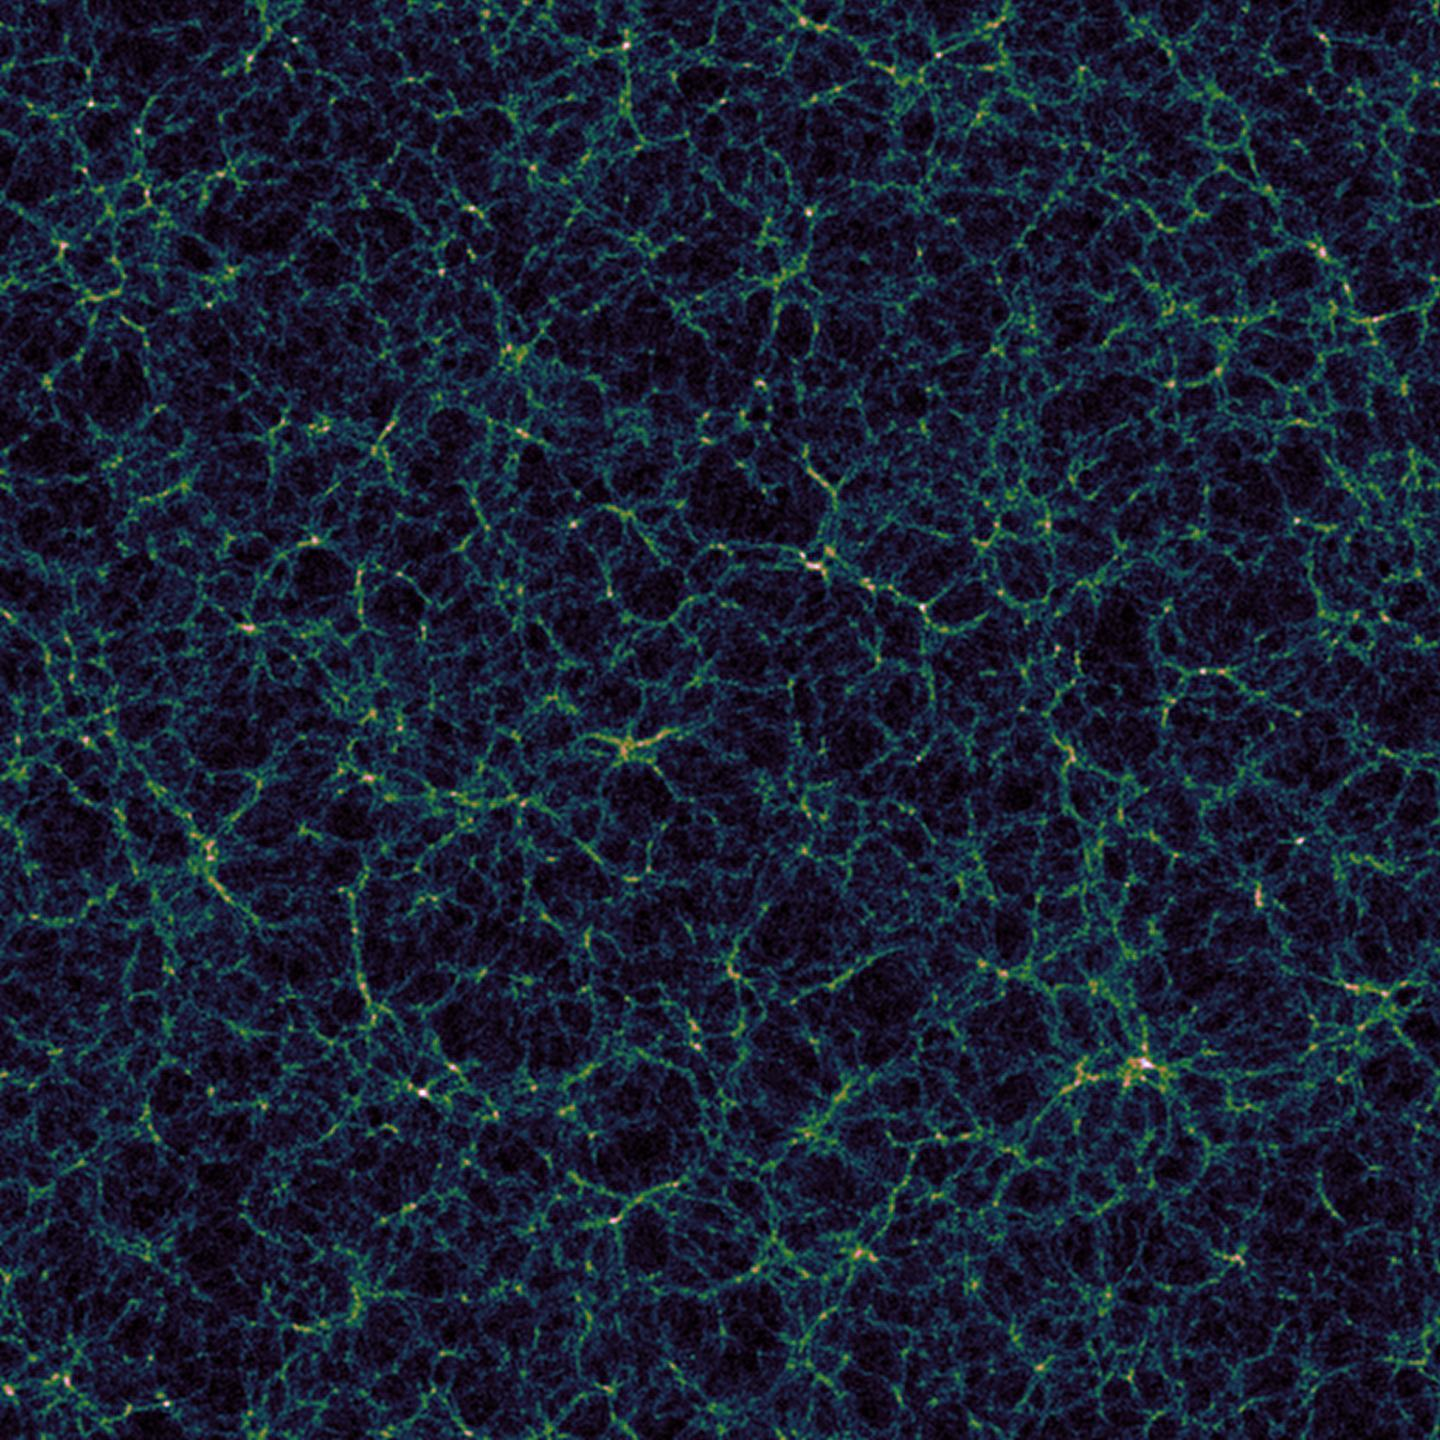 Simulated view of large-scale universe structure